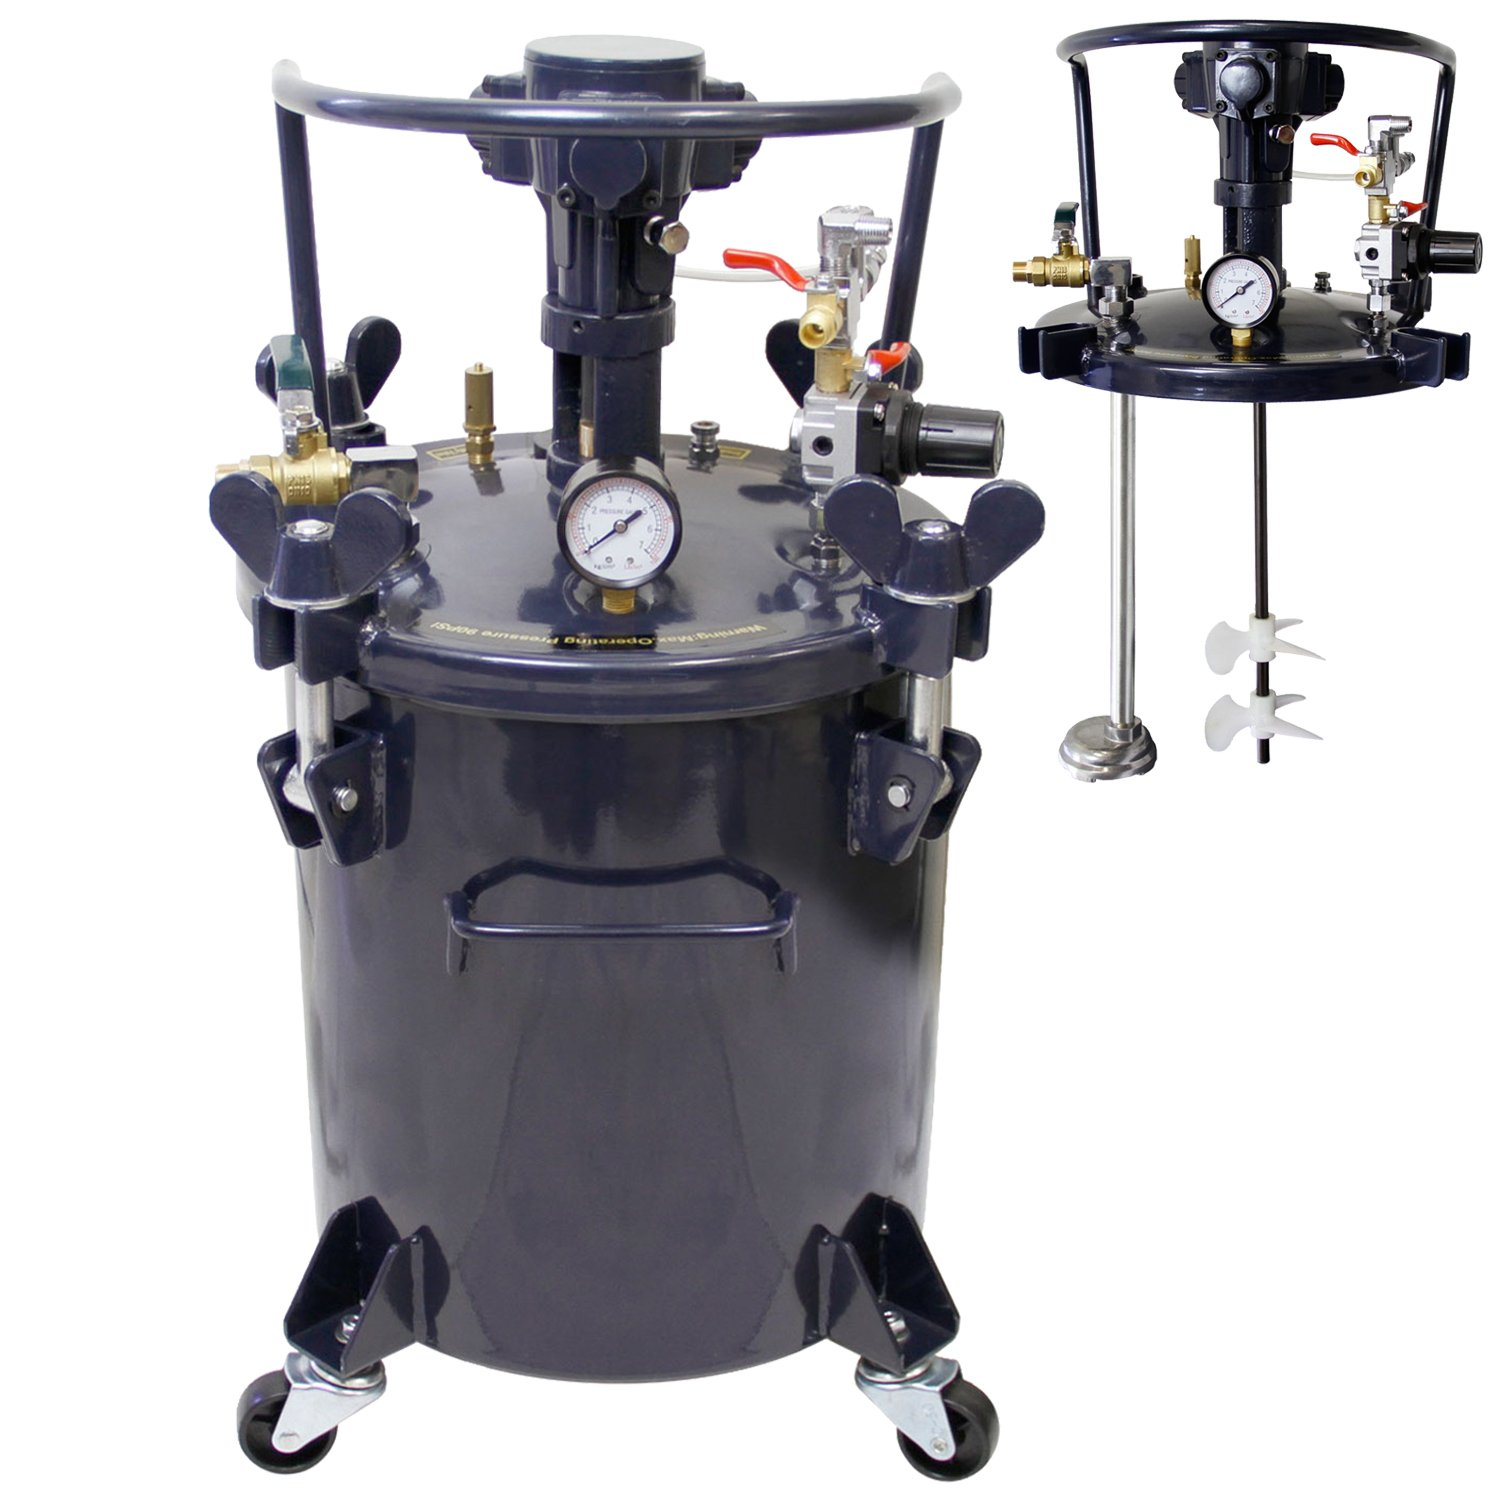 TCP Global Commercial 8 Gallon (30 Liters) Spray Paint Pressure Pot Tank with Air Powered Mixing Agitator by TCP Global